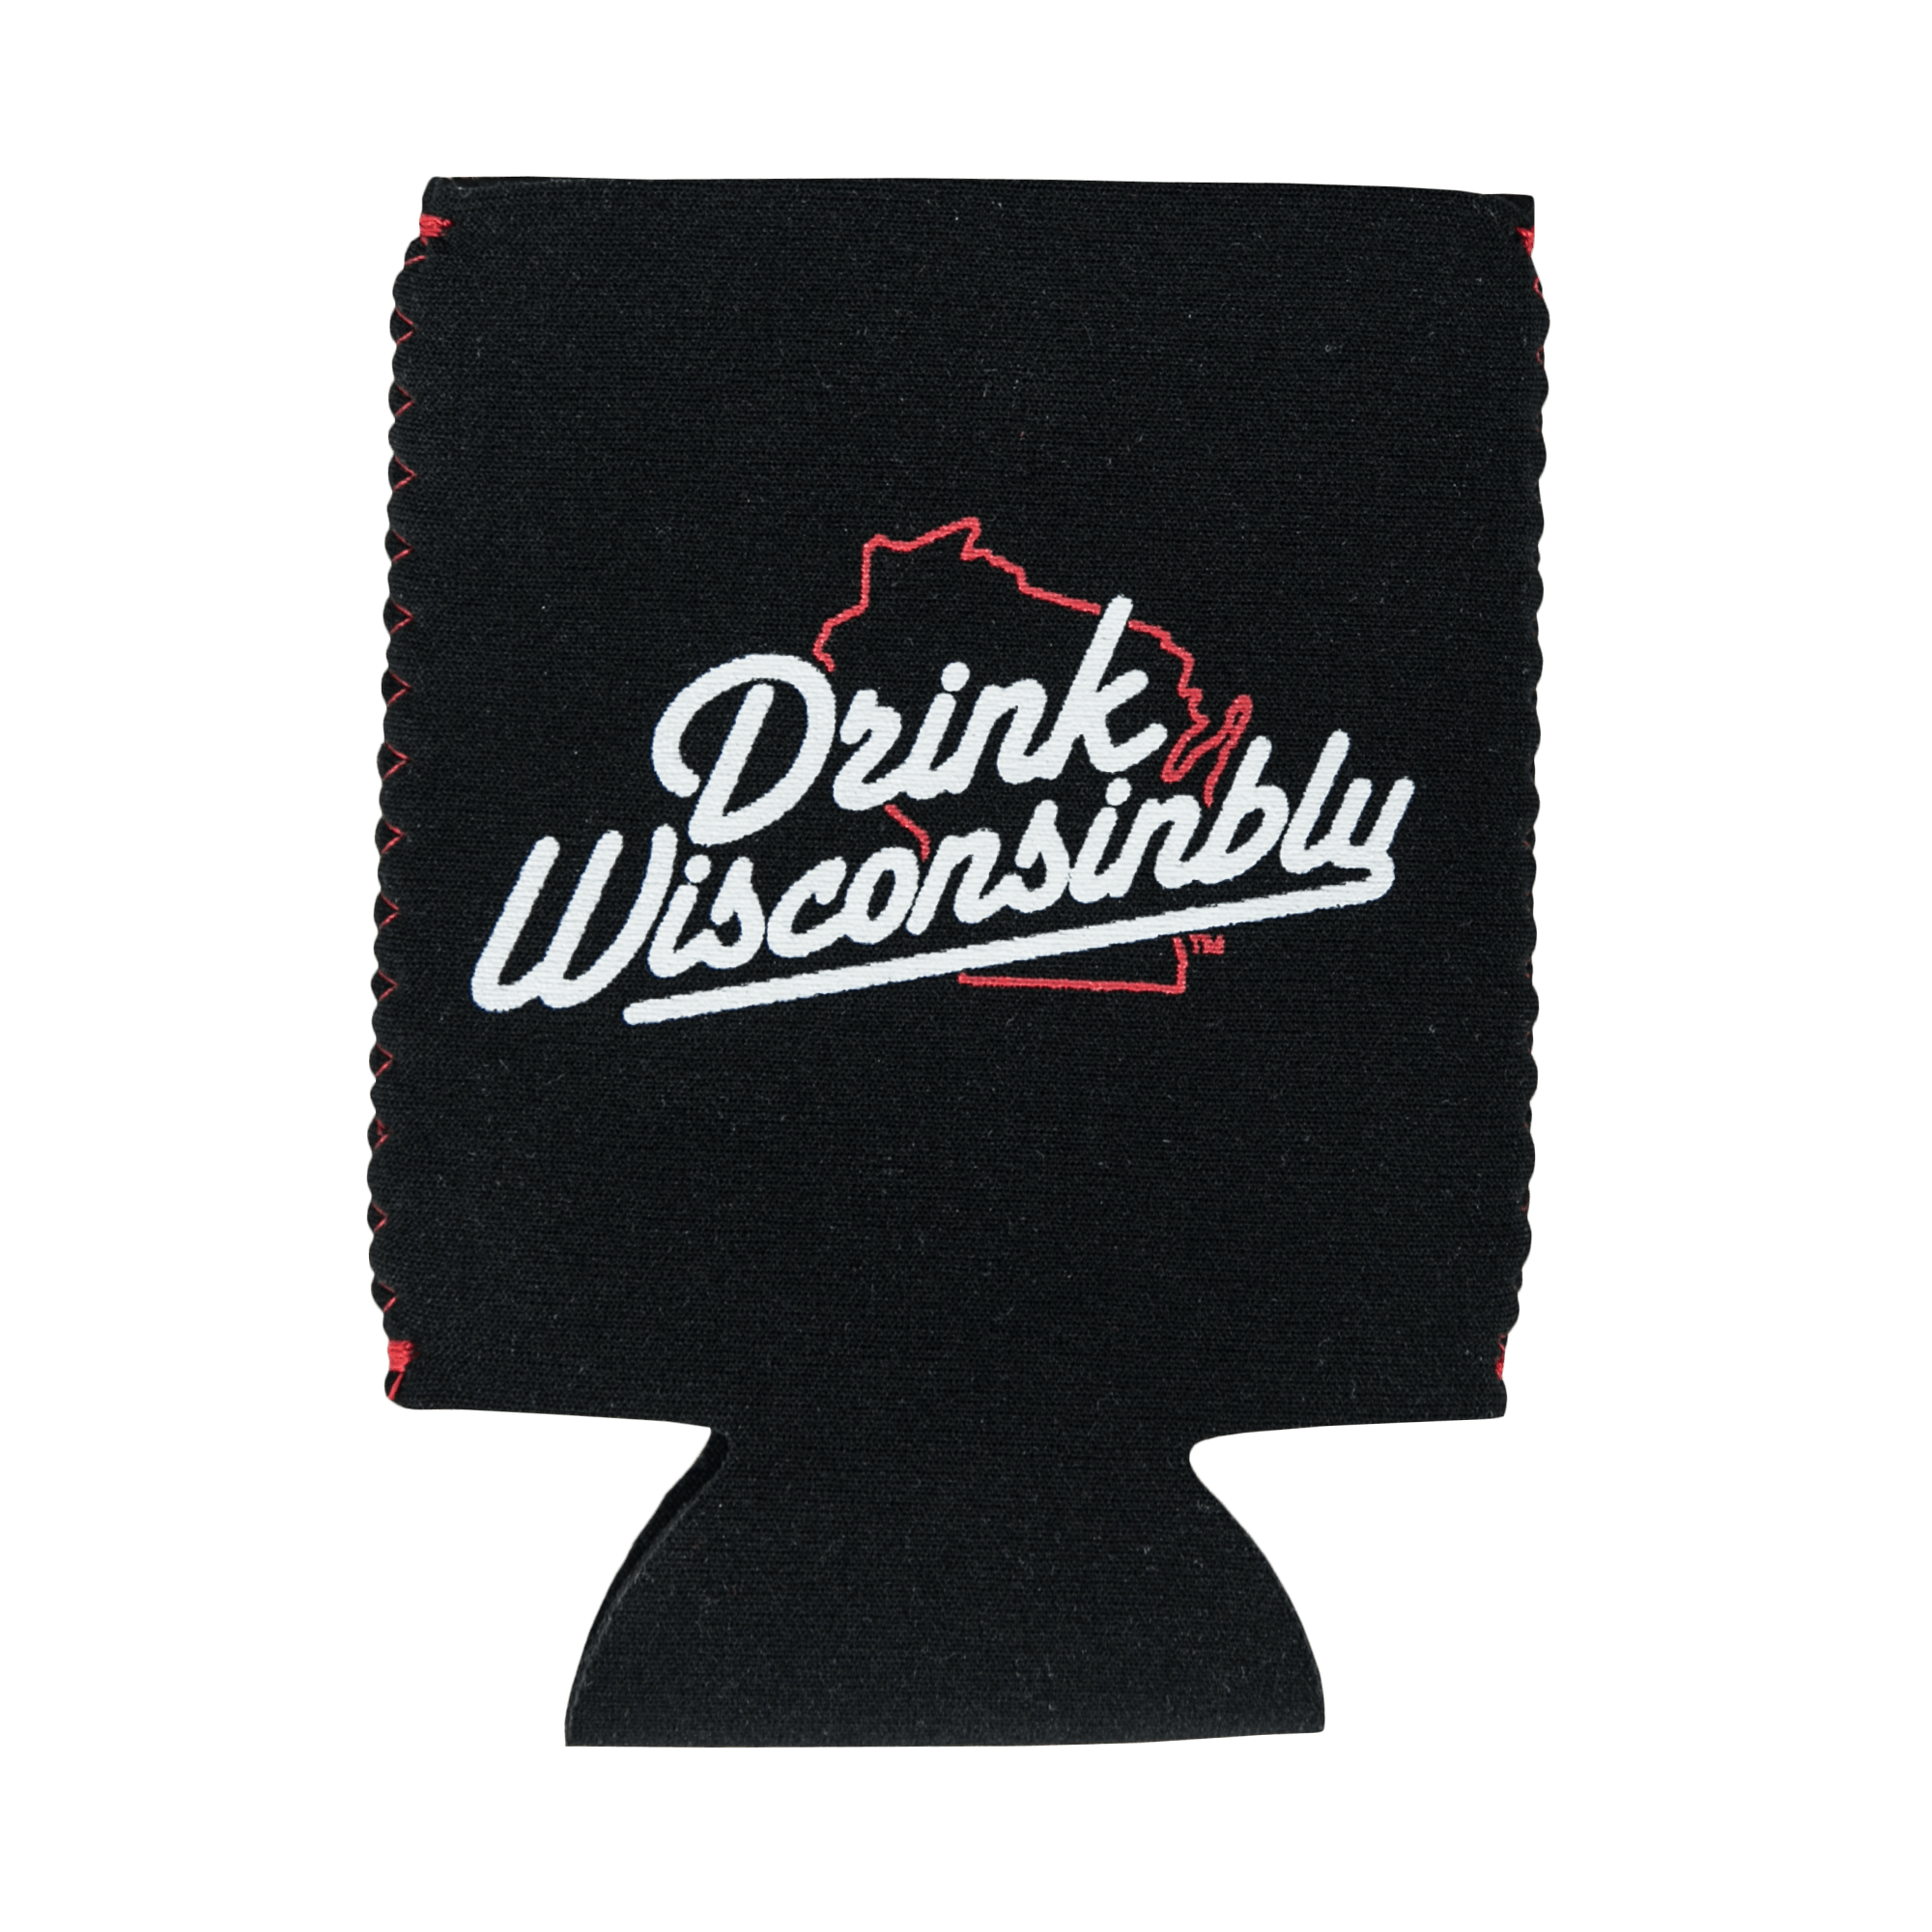 "Drink Wisconsinbly ""I [Heart] Day Drinking"" Coozie"